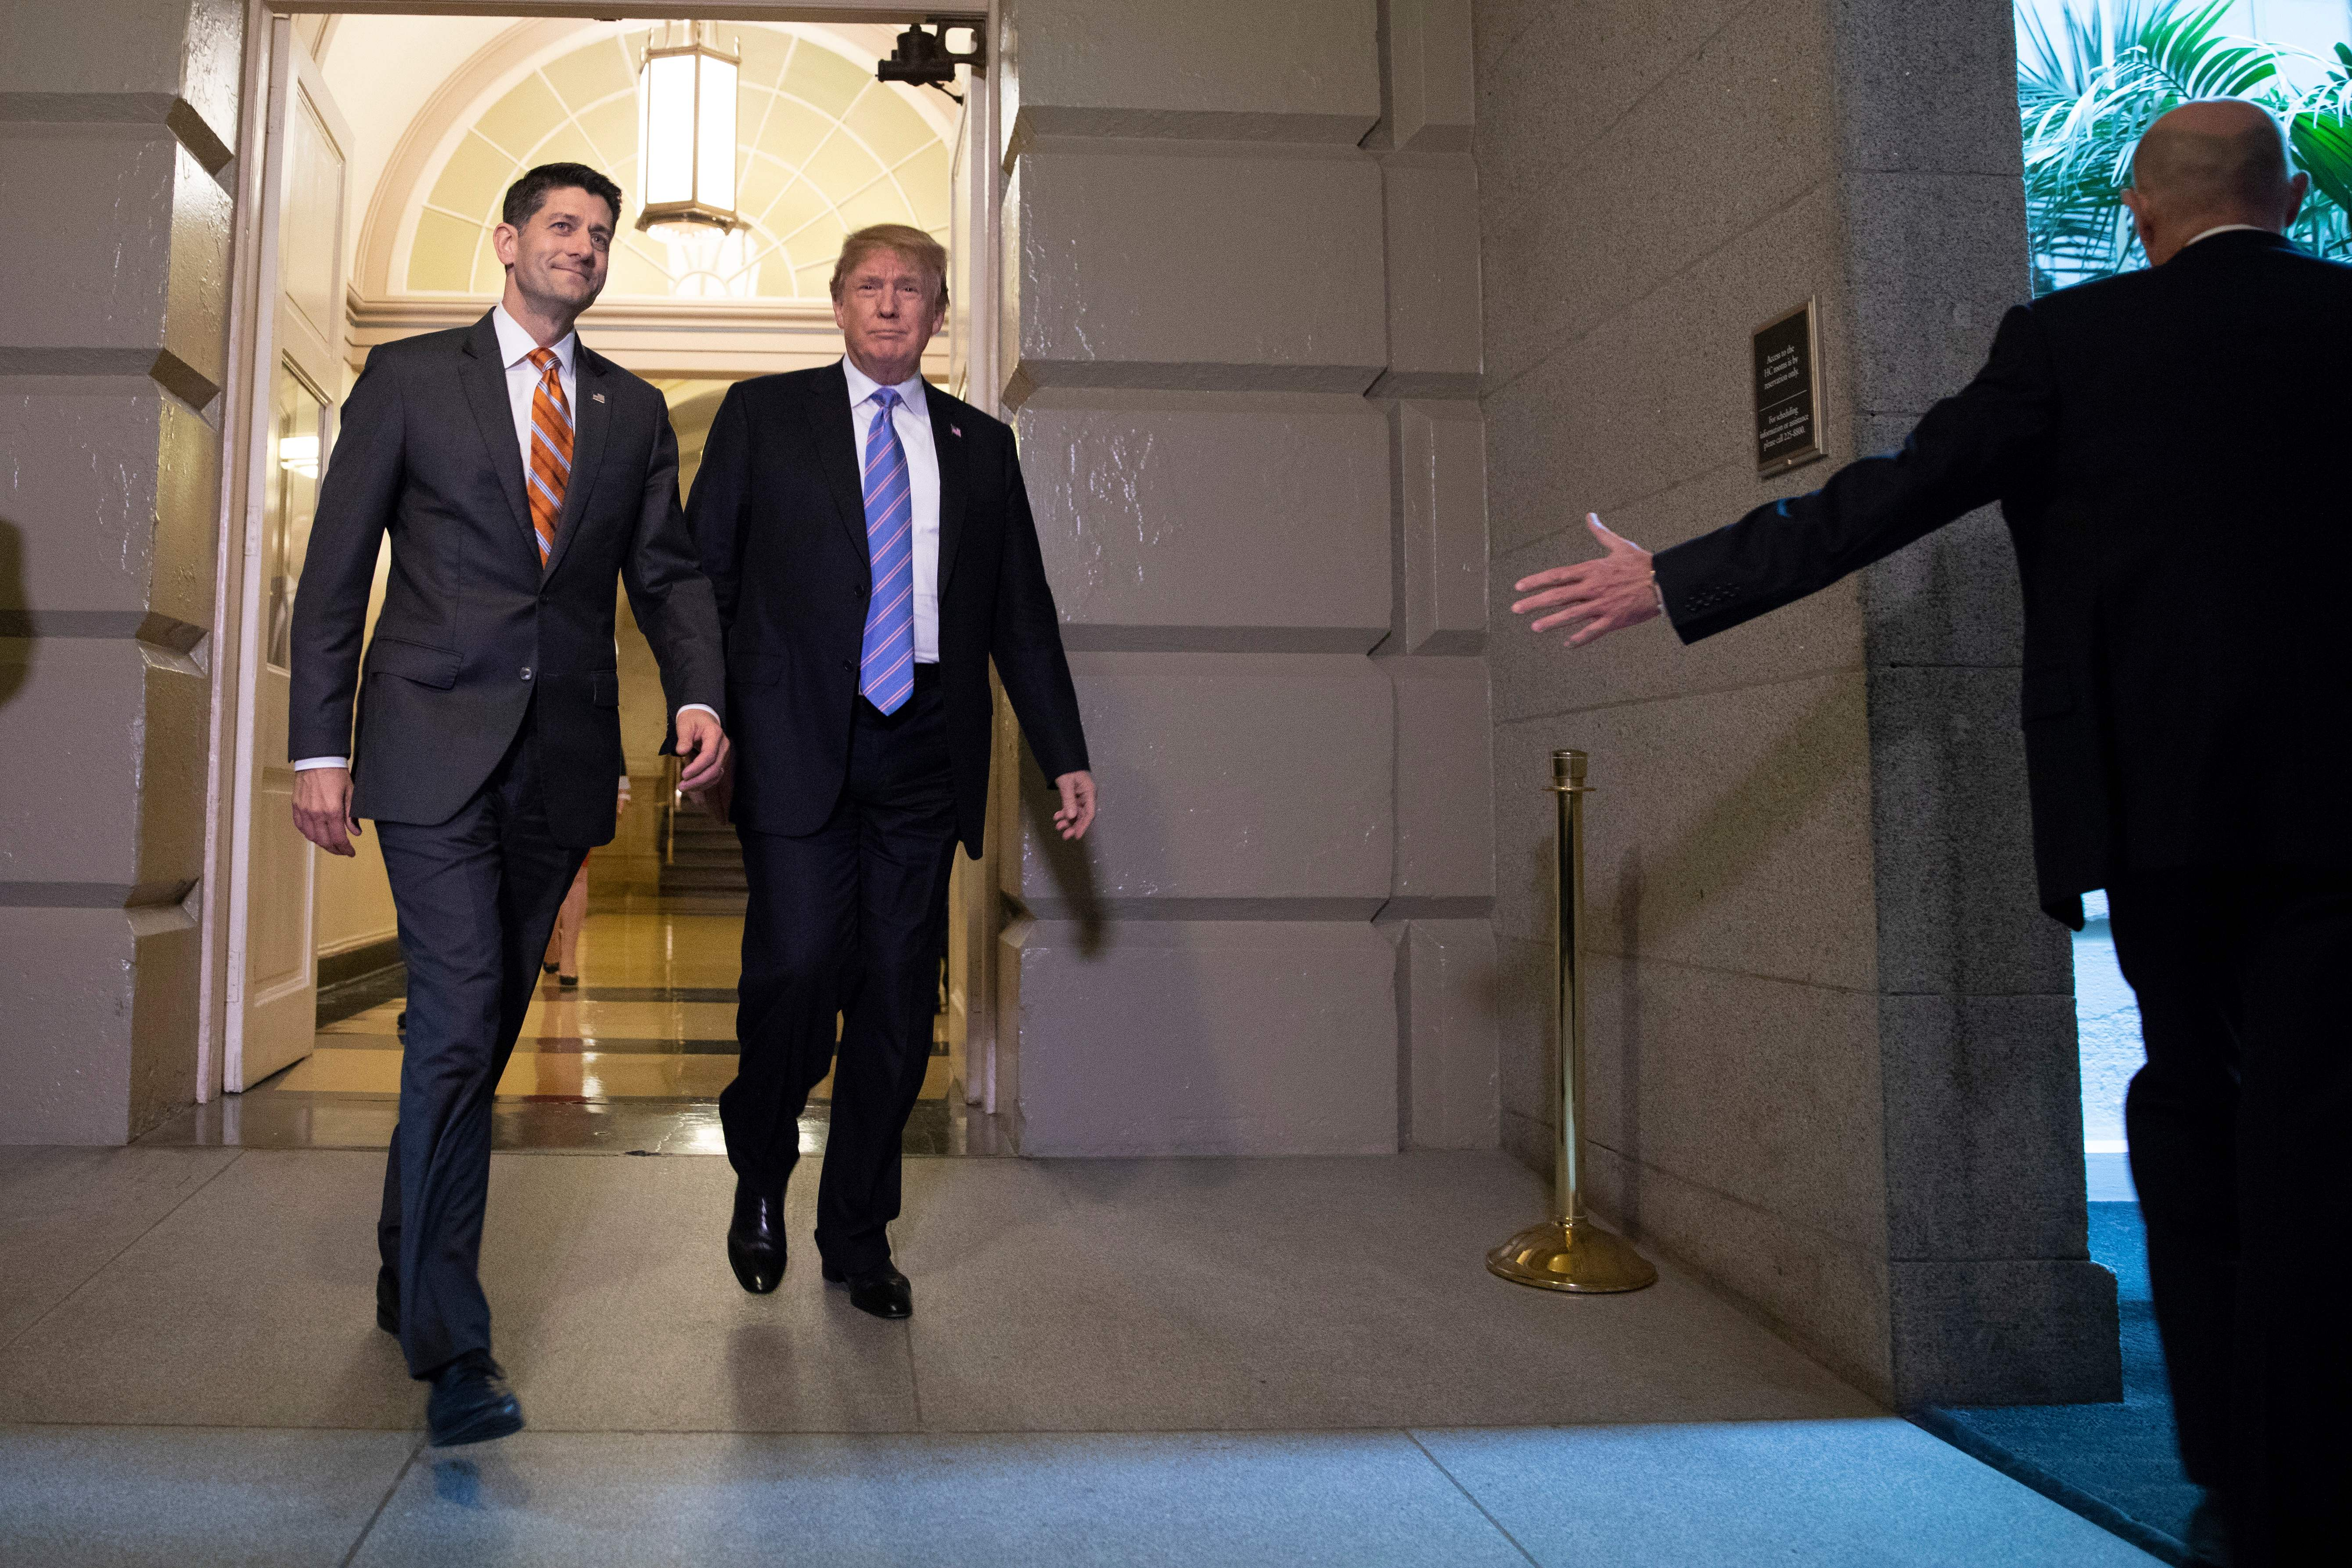 Trump, accompanied by House Speaker Paul Ryan, arrive for a meeting with Republican members of Congress on Tuesday.